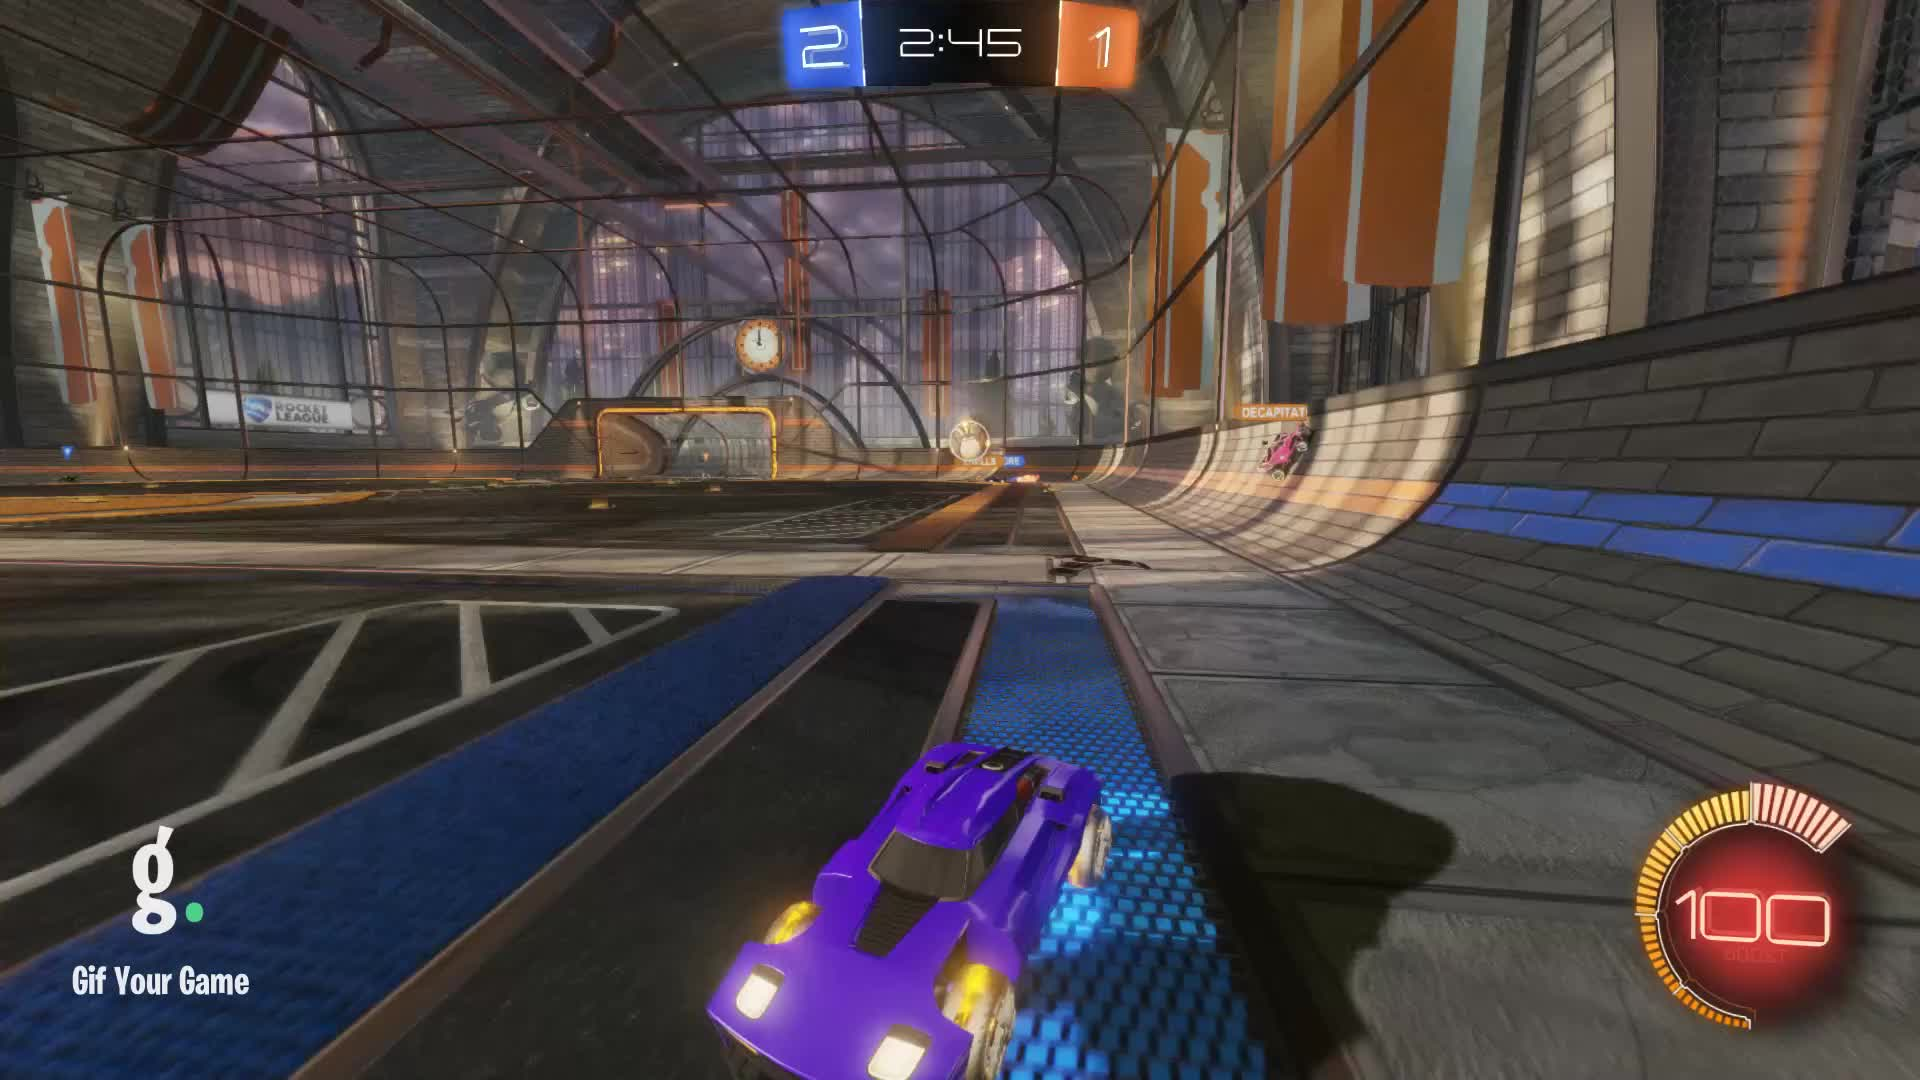 Gif Your Game, GifYourGame, Goal, Rocket League, RocketLeague, marcola, Goal 4: marcola GIFs